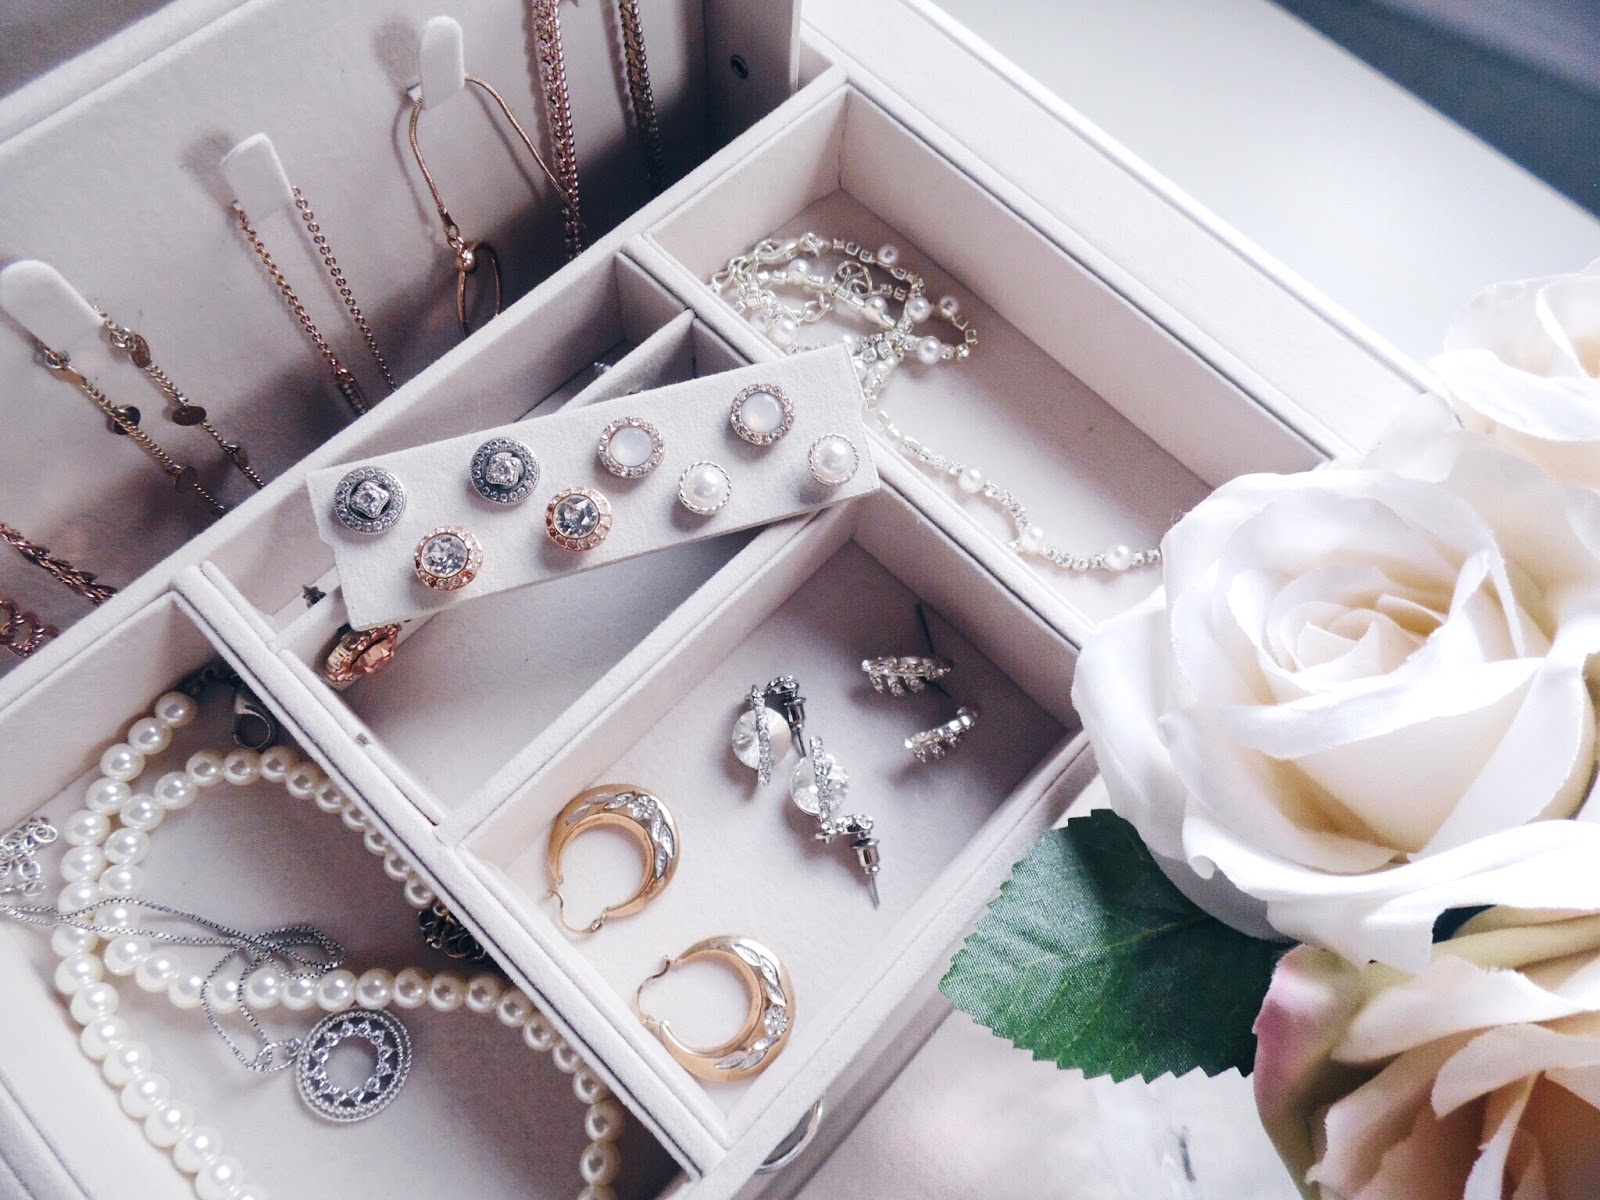 close up of jewerly box with earrings, necklaces and bracelets inside